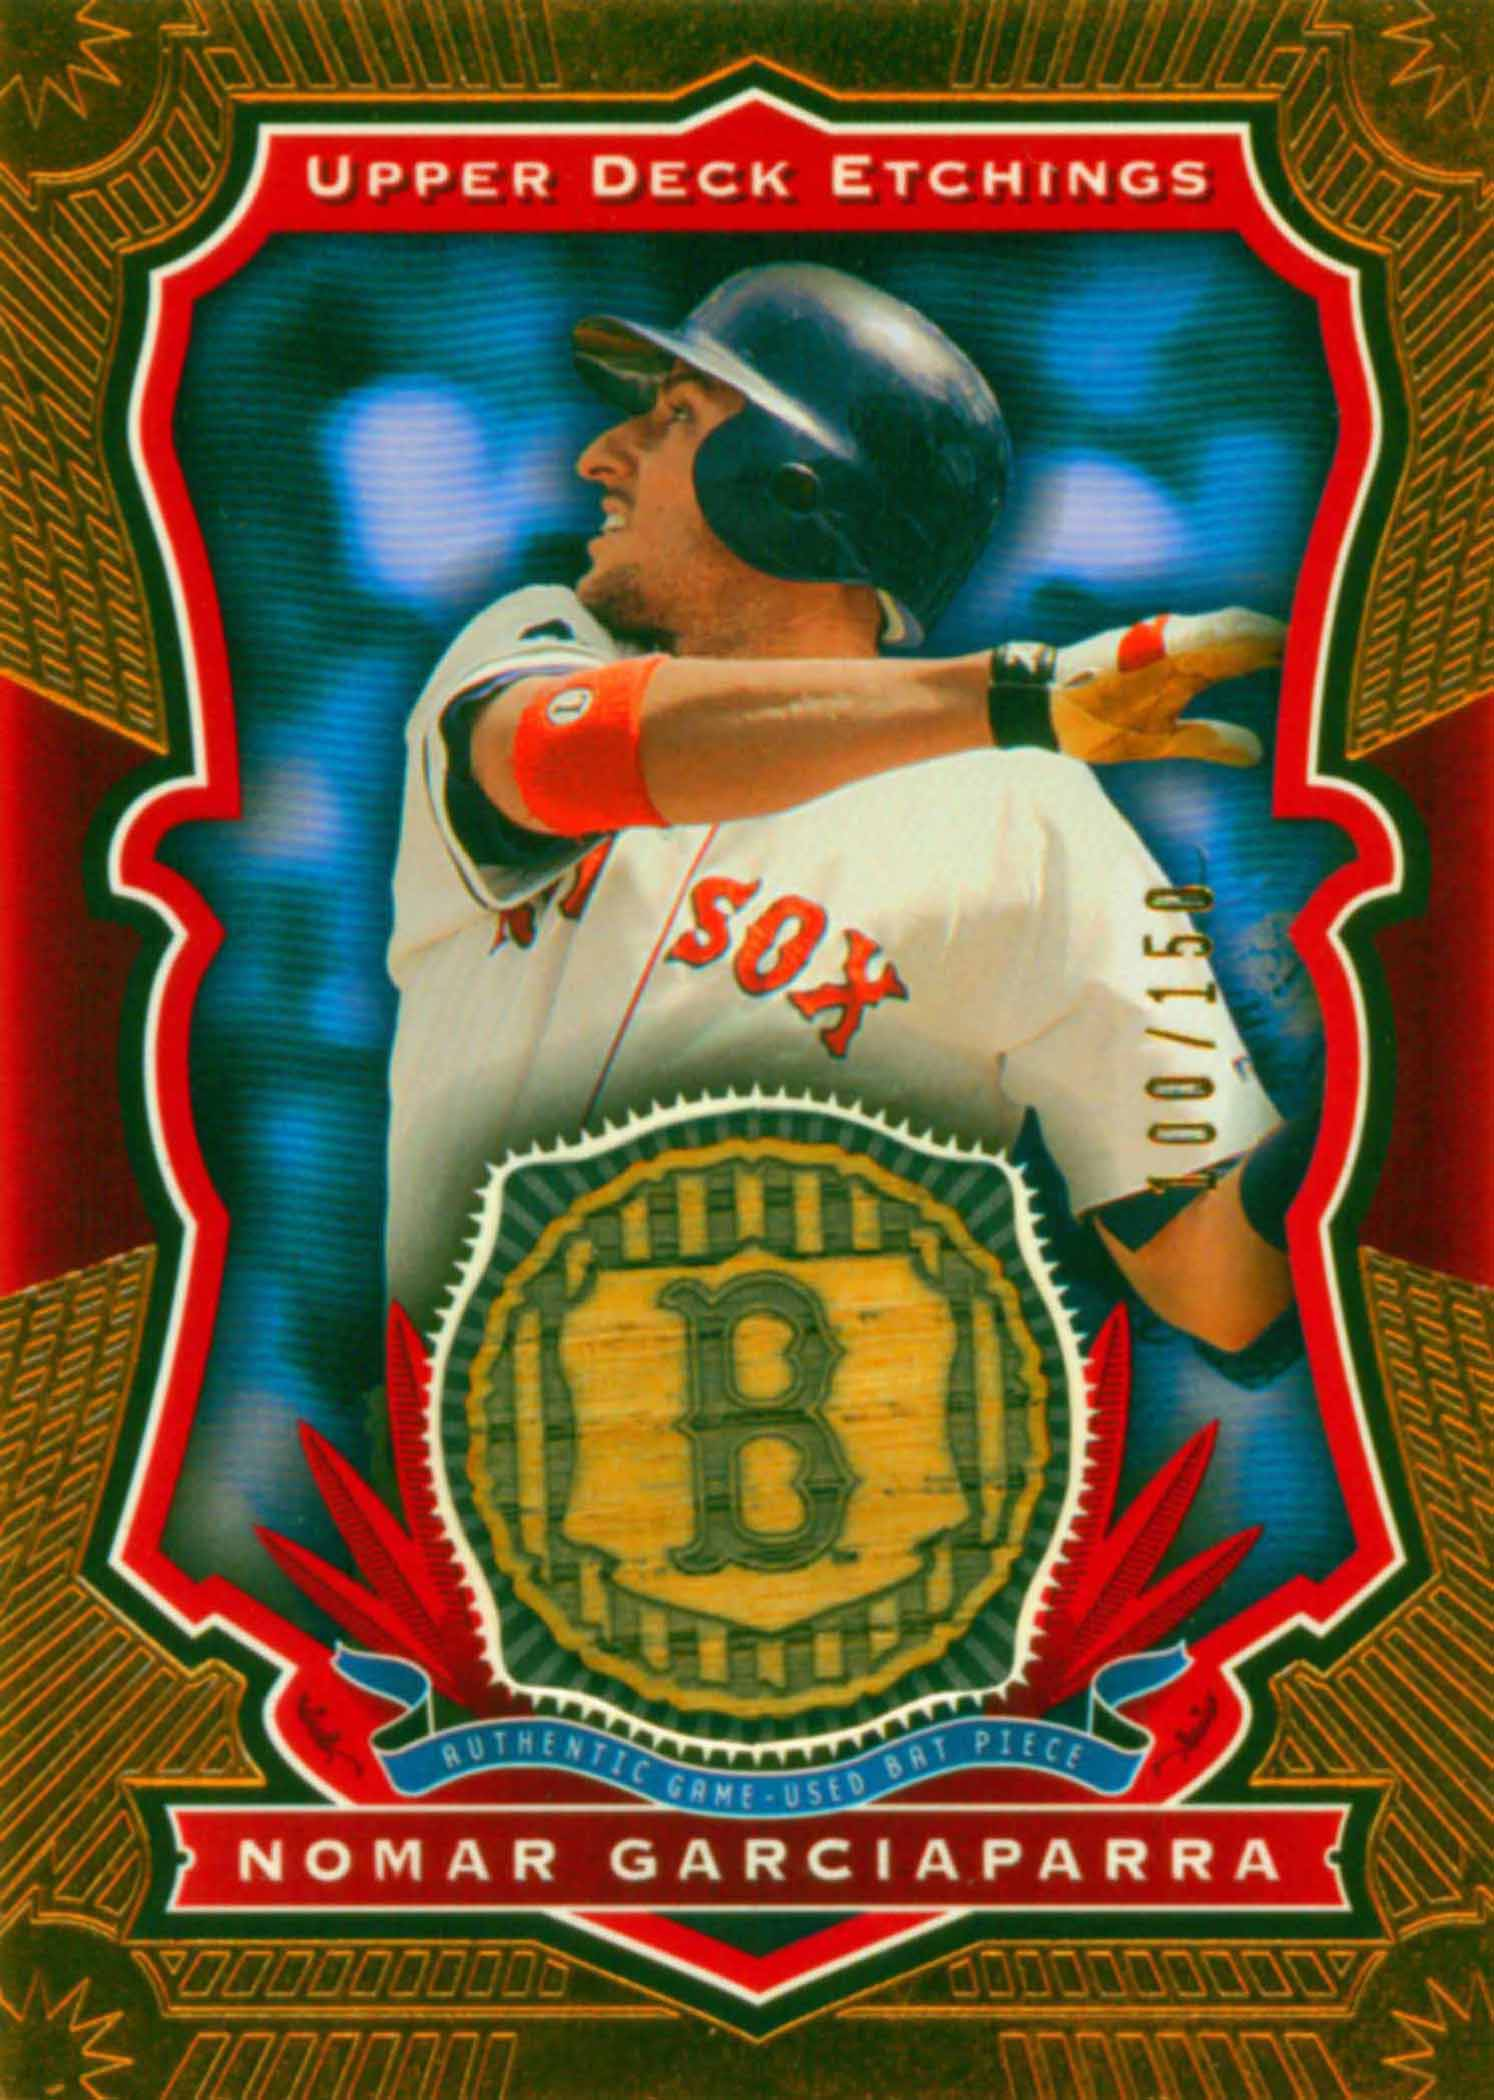 2004 Upper Deck Etchings Game Bat Red